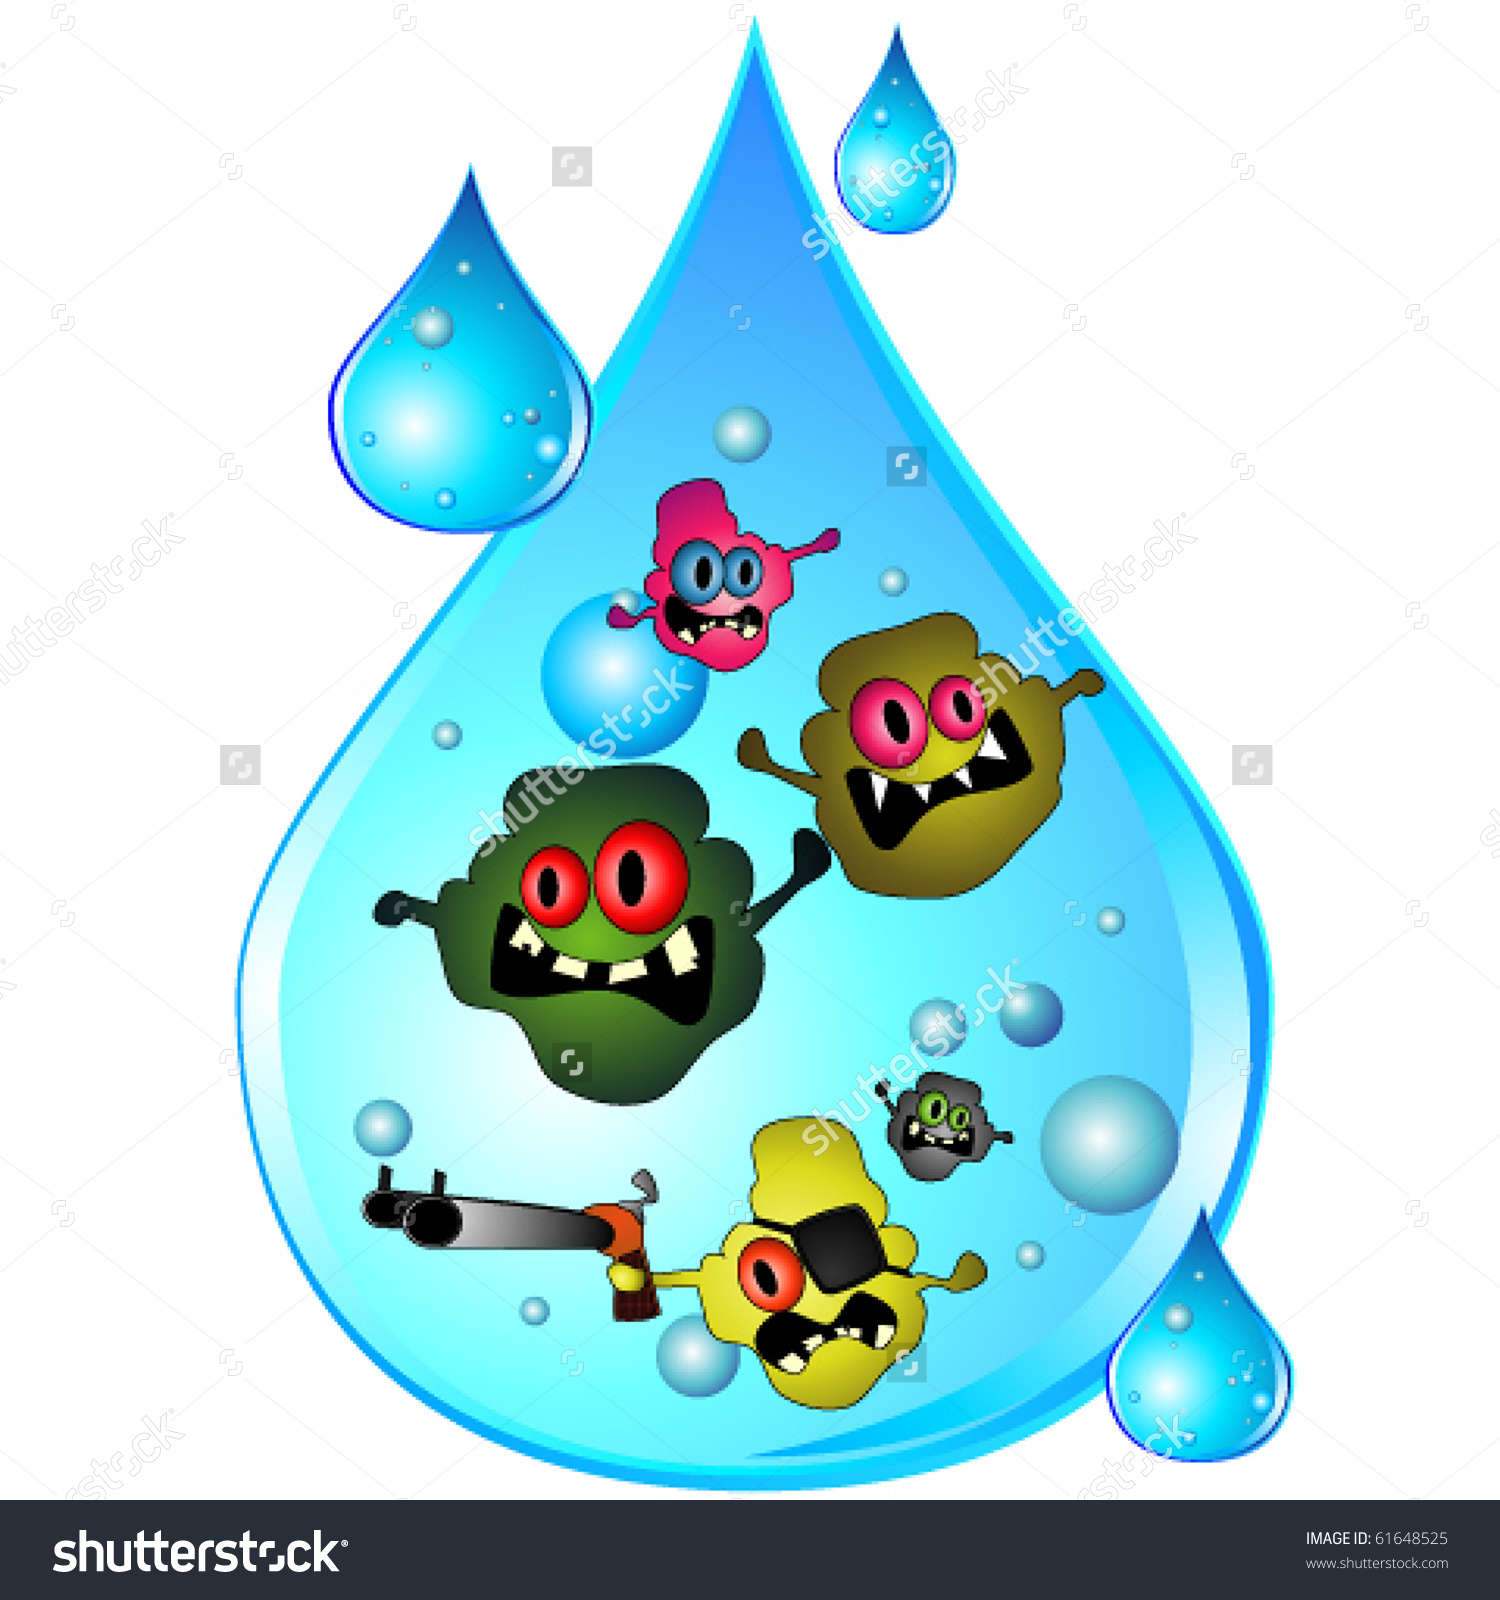 Bad water clipart 20 free Cliparts.